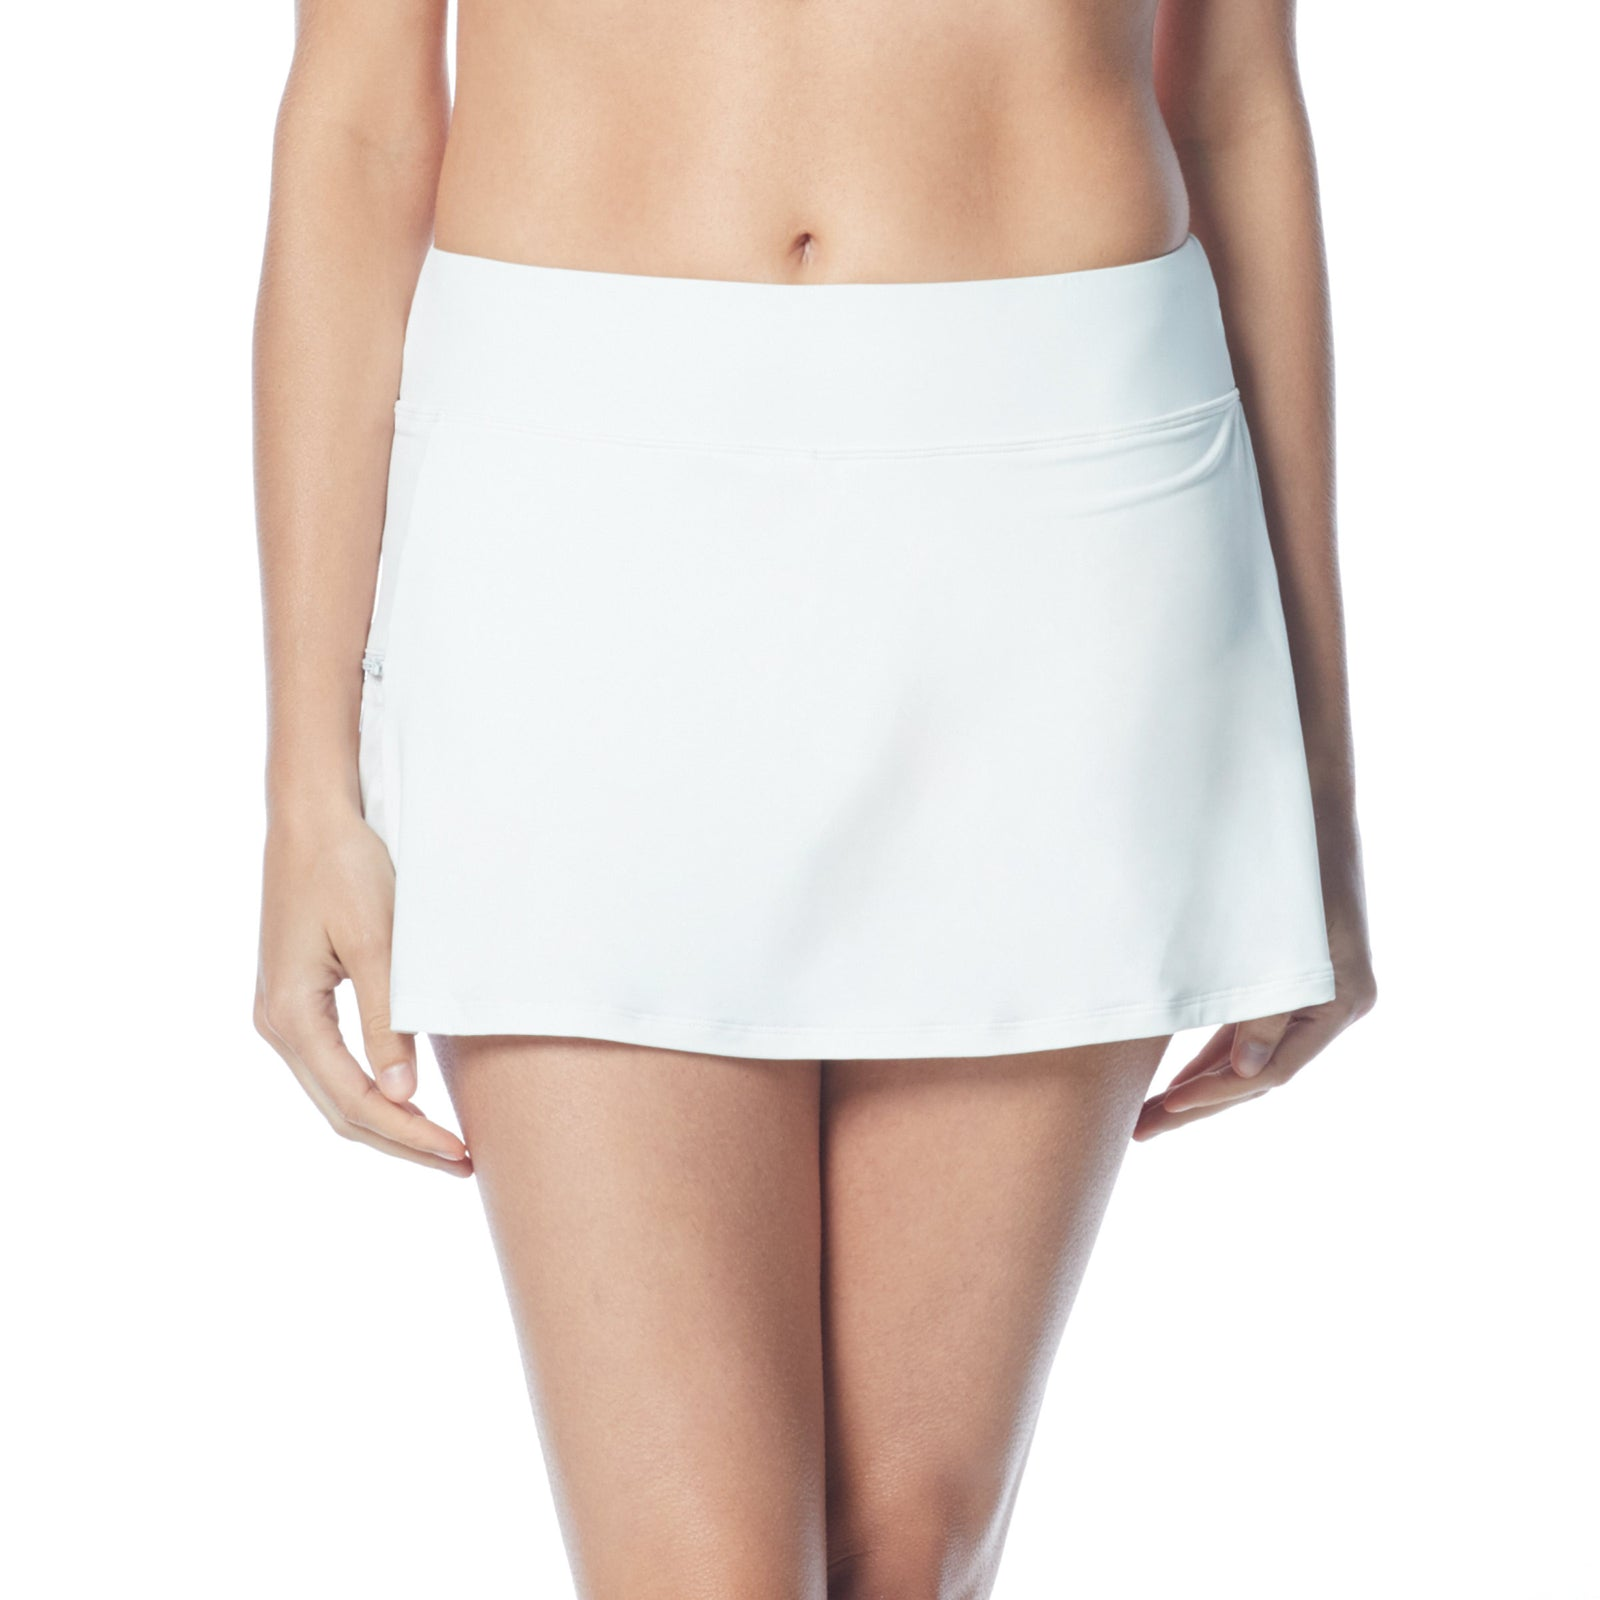 Swim Skort Boy Shorts Attached Underneath Full Coverage Zippered Pocke 50+ UPF 4 Way Stretch Soft Touch Comfort Fabric with Lycra® Chlorine Resistant Fabric Content: 85% Nylon/15% Xtra Life Lycra® Hand Wash Cold, Line Dry white